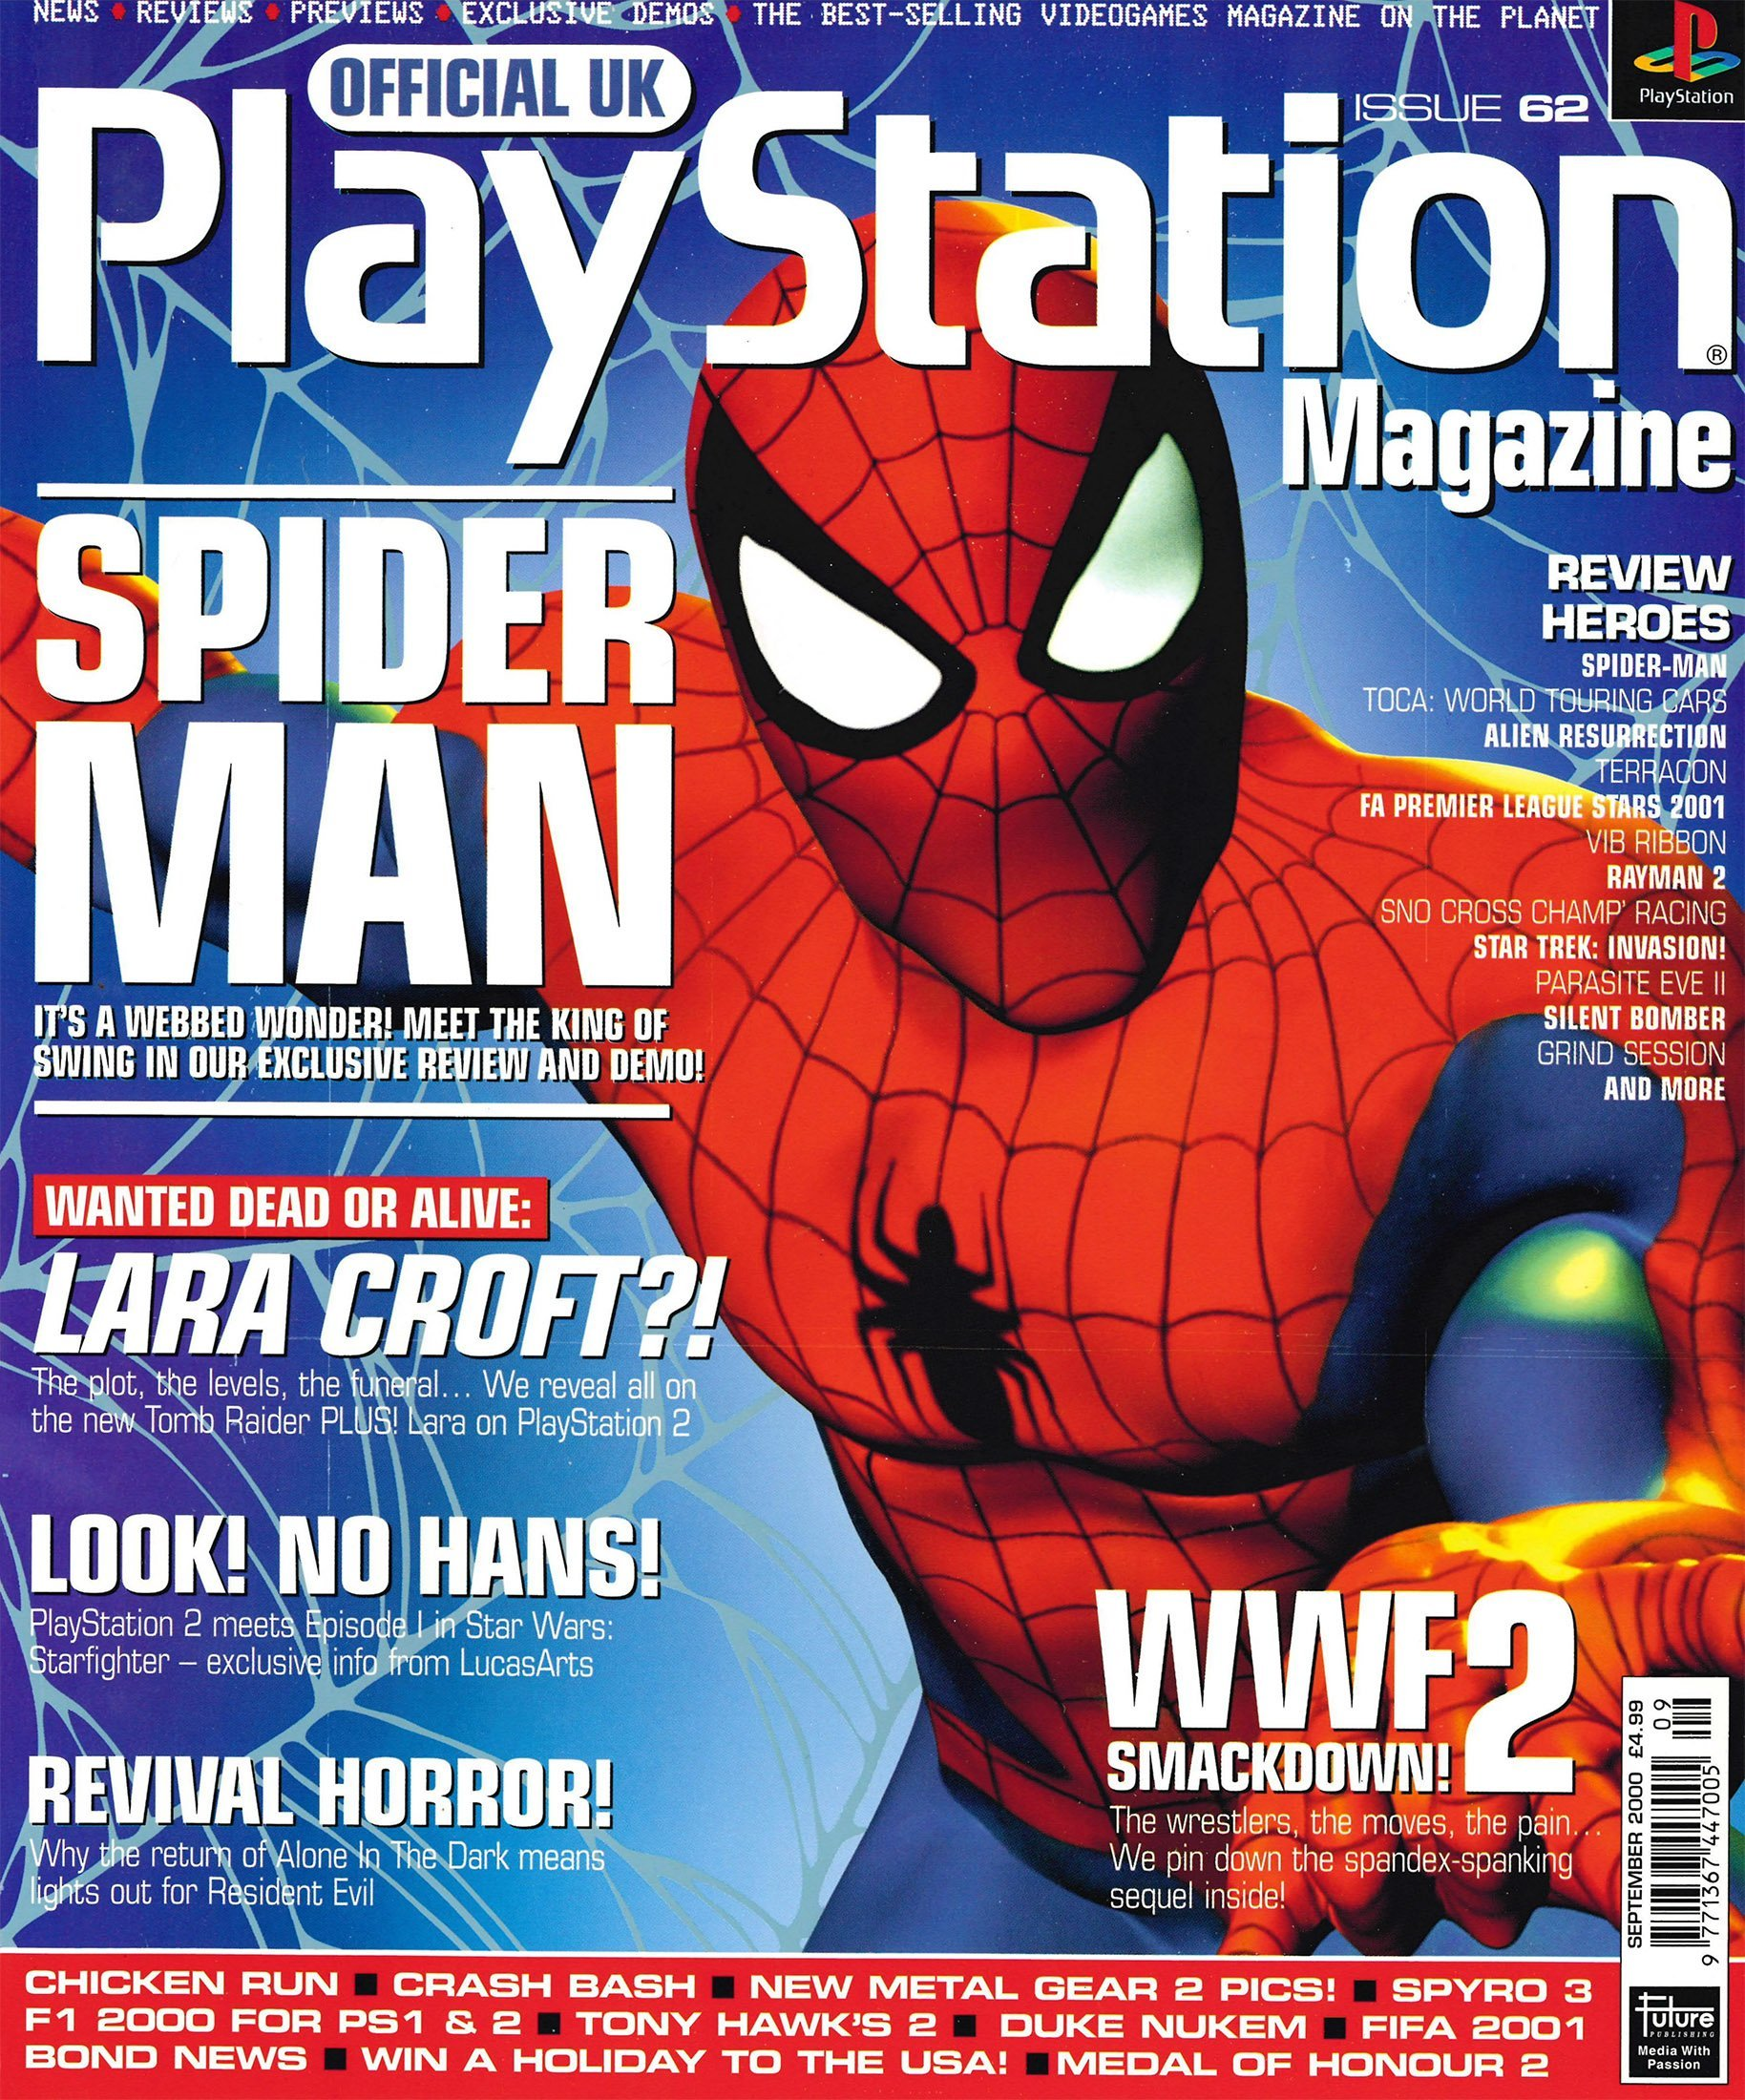 Official UK PlayStation Magazine Issue 062 (September 2000)